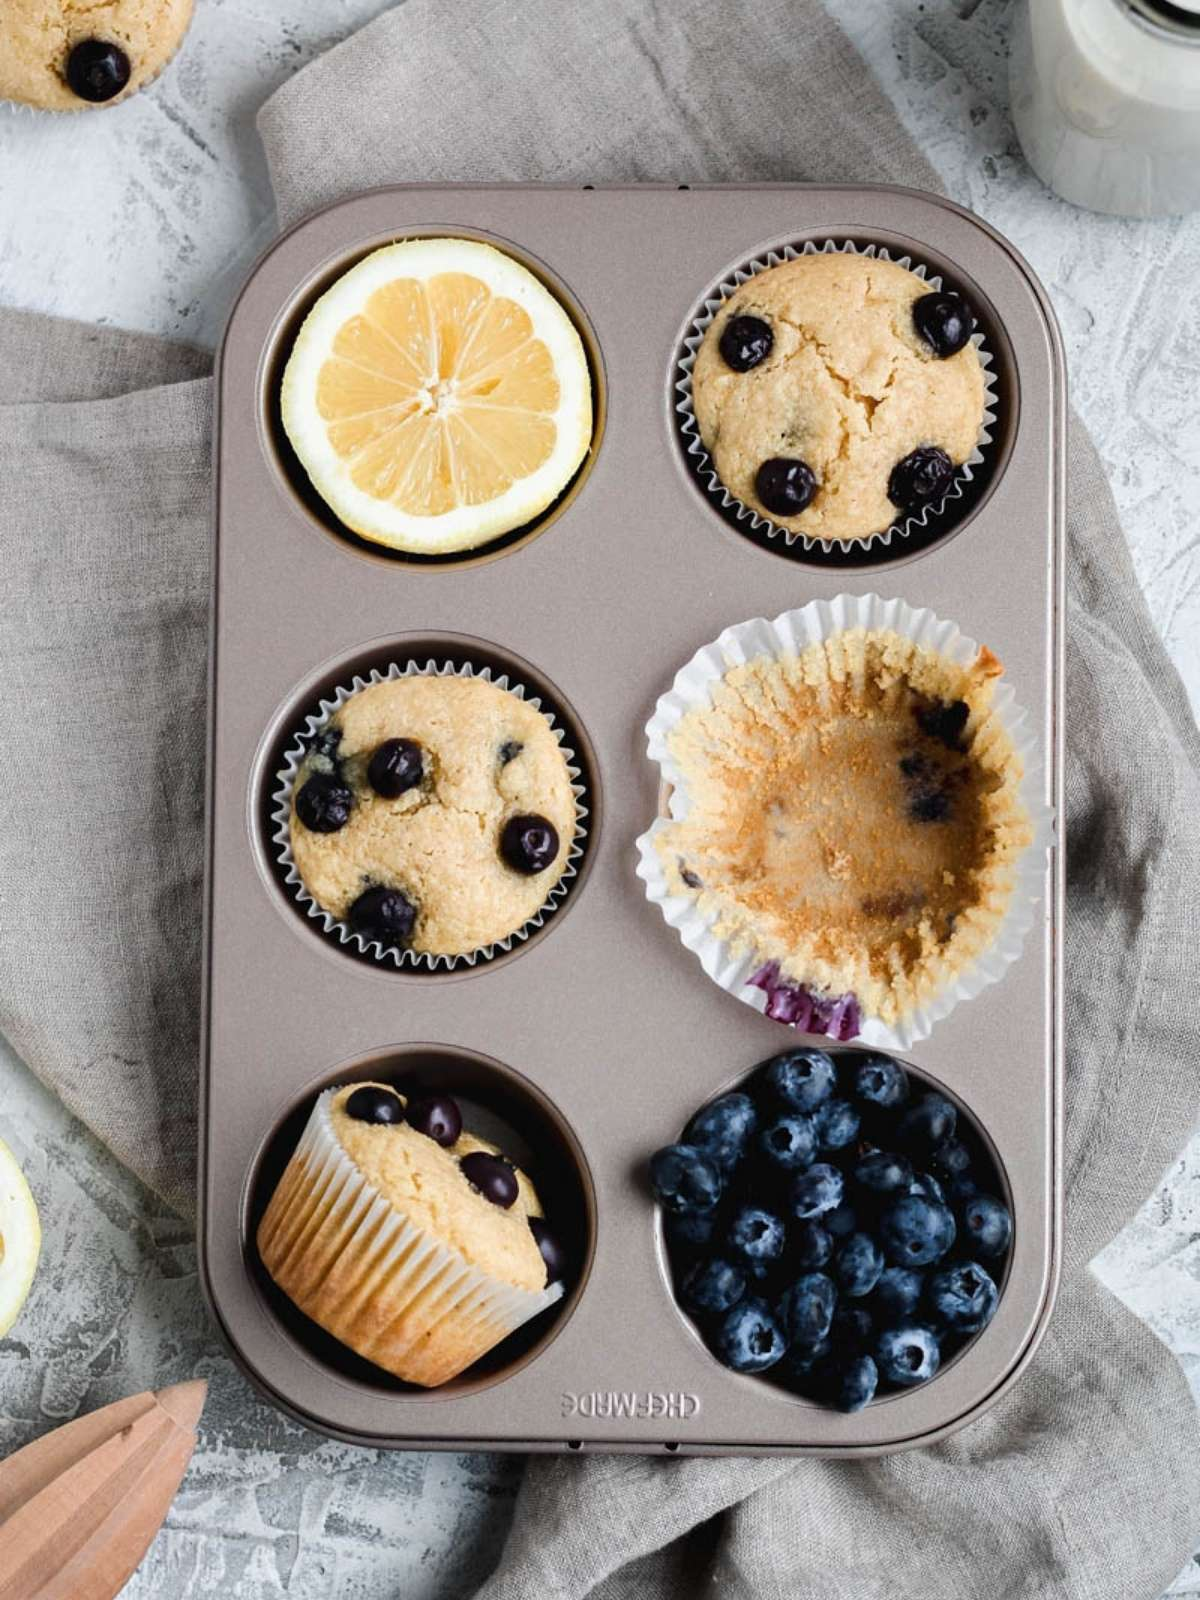 A six muffin tin pan filled with three gluten free blueberry lemon muffins, one tin is filled with a sliced lemon, one tin is filled with an empty cupcake liner, and one tin is filled with blueberries